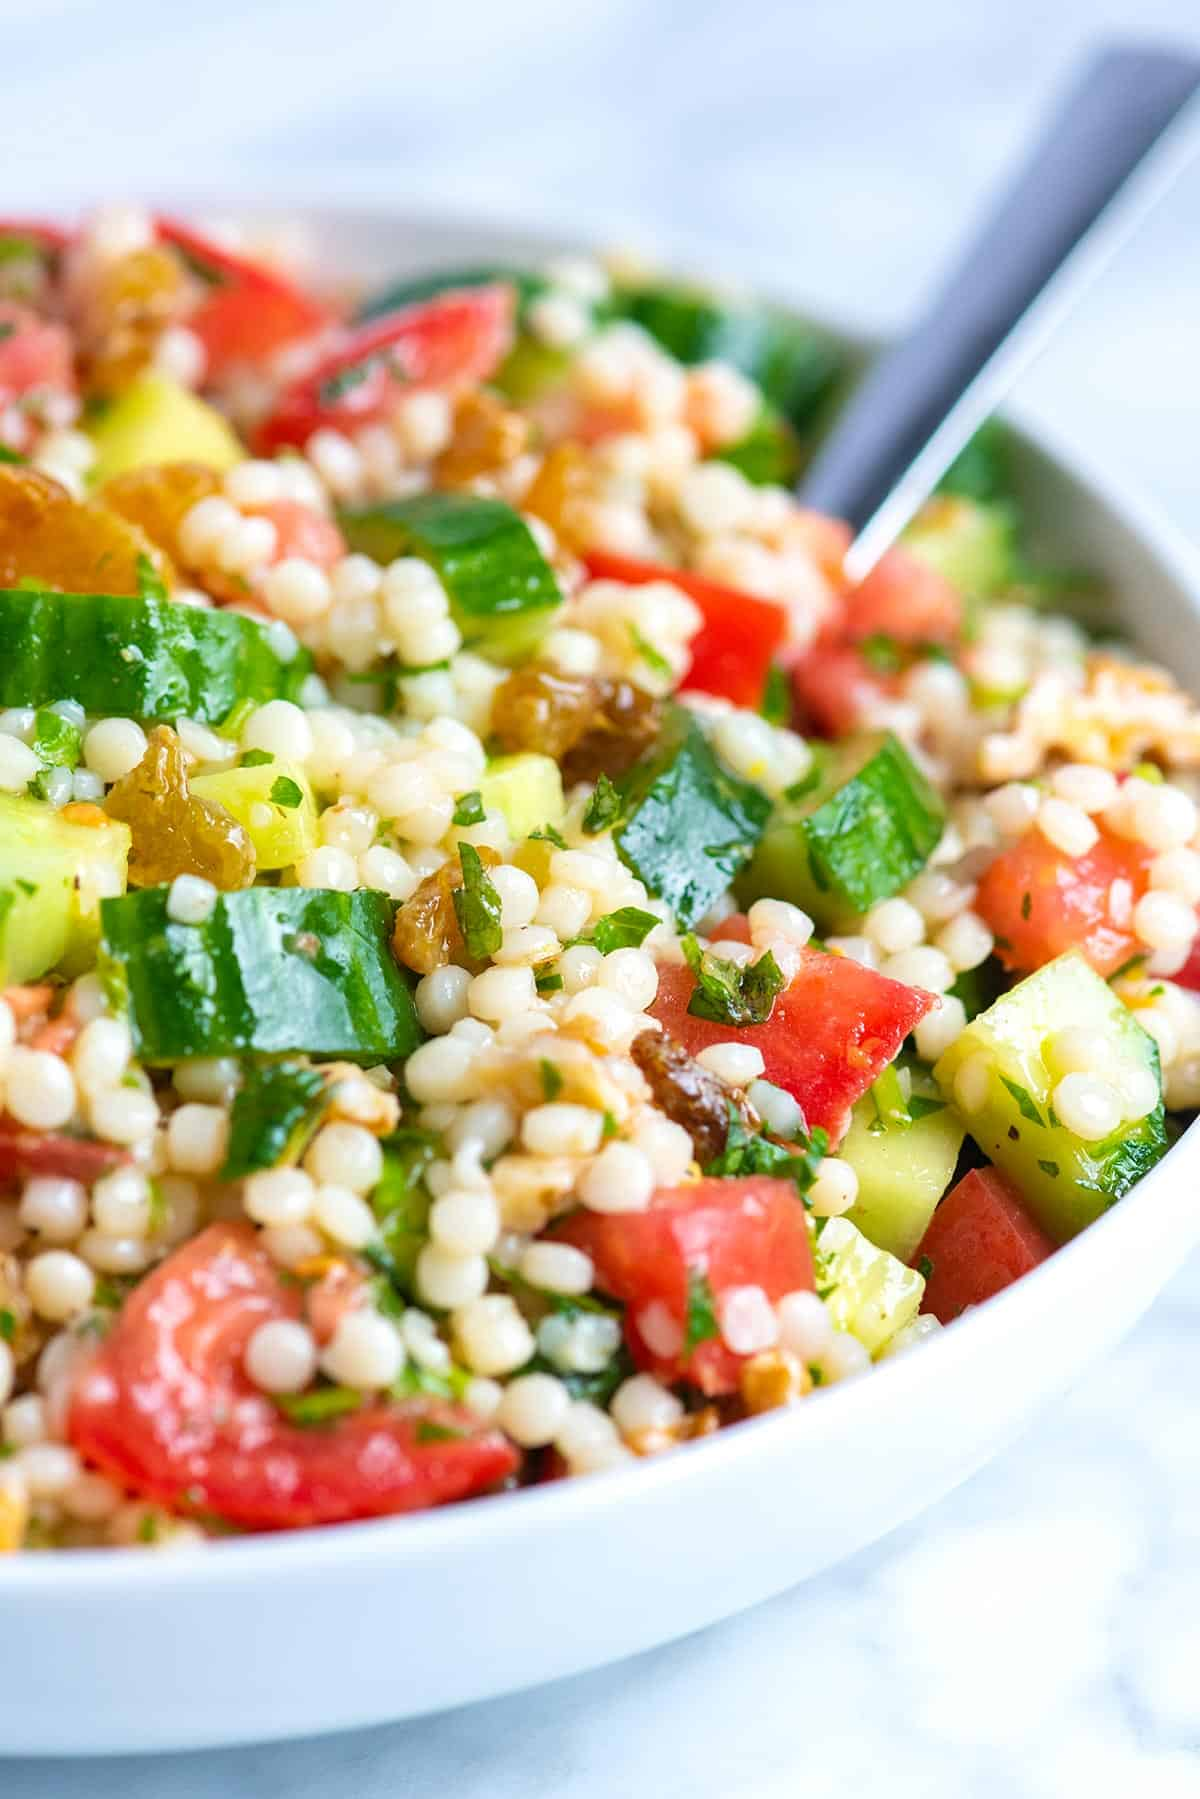 Easy-Couscous-Salad-Recipe-2-1200.jpg